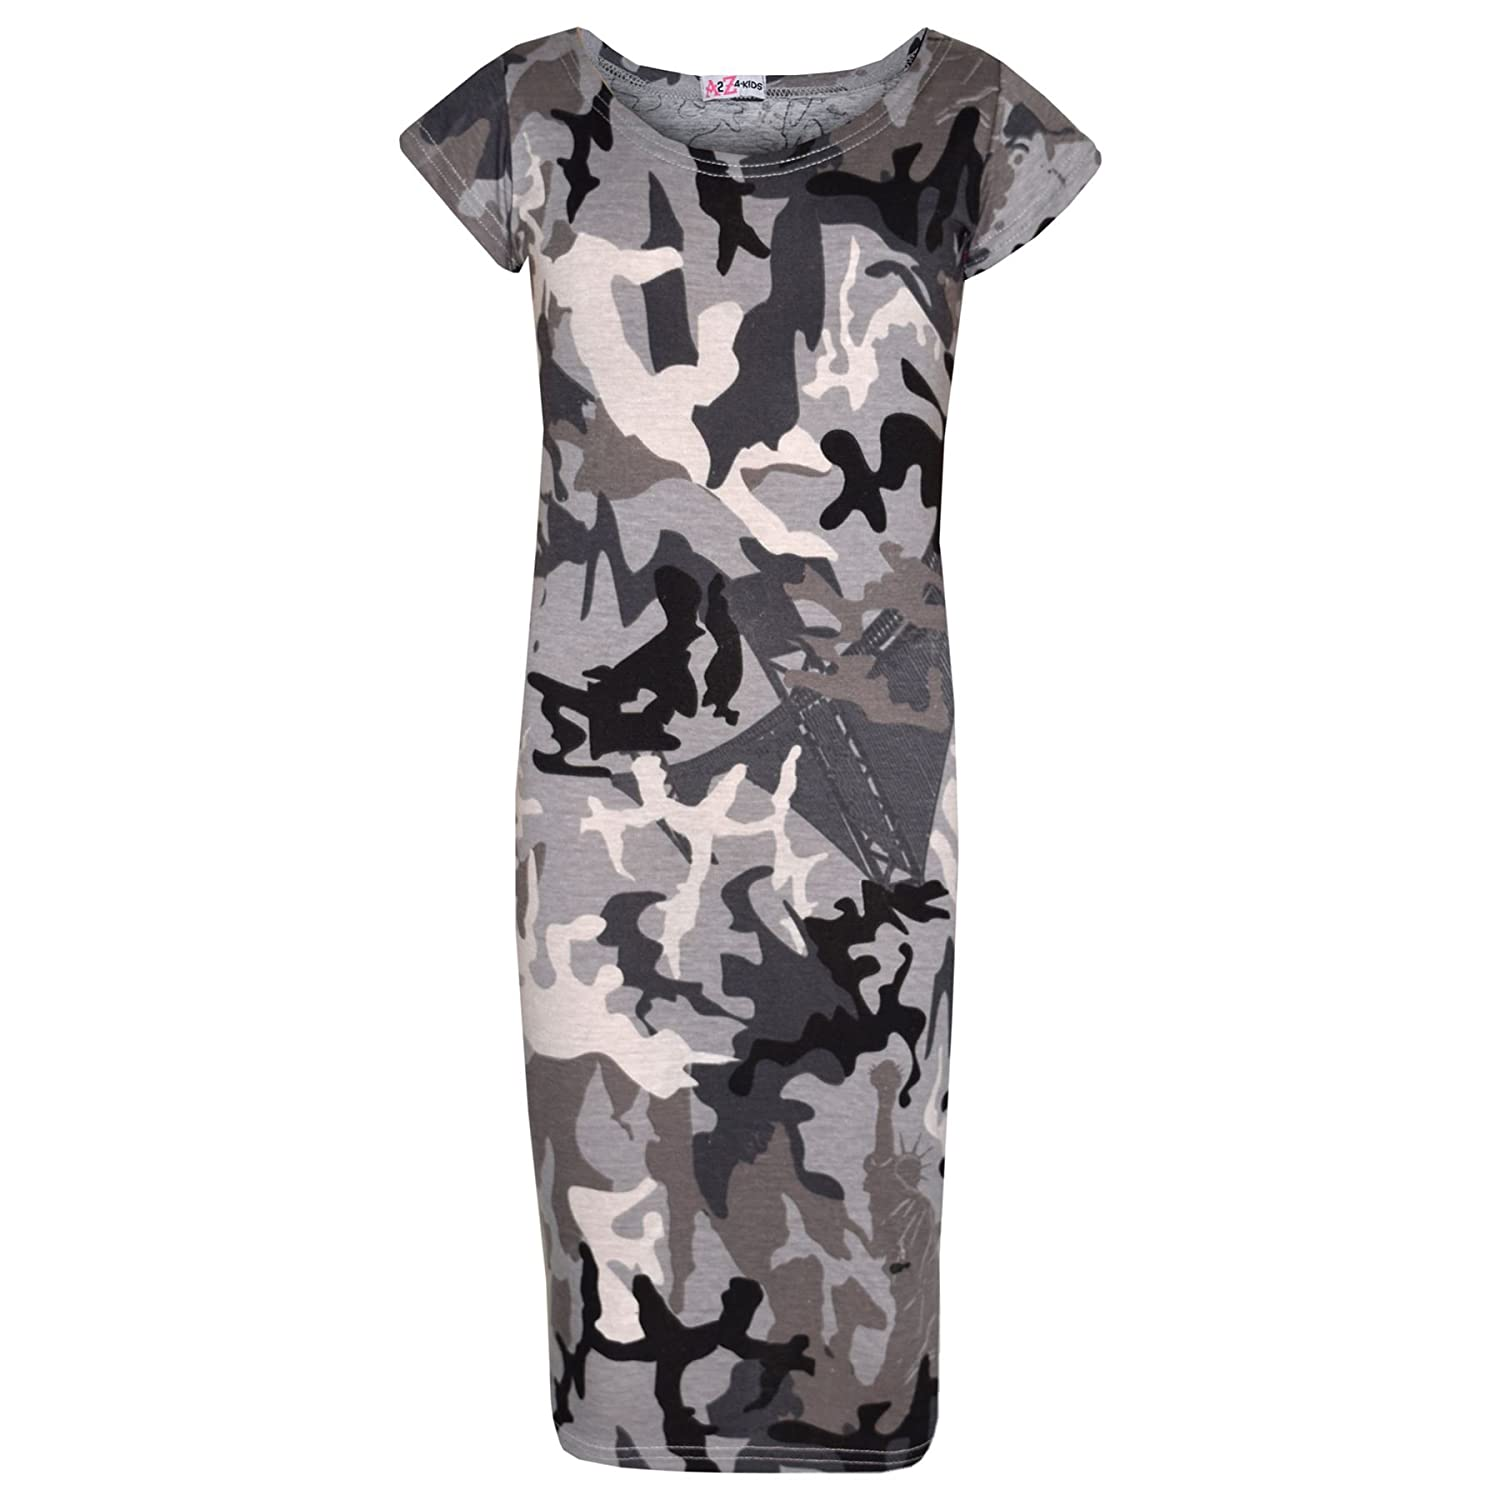 A2Z 4 Kids® Girls Top Kids Camouflage Print Crop Top Legging Midi Dress New Age 7 8 9 10 11 12 13 Years